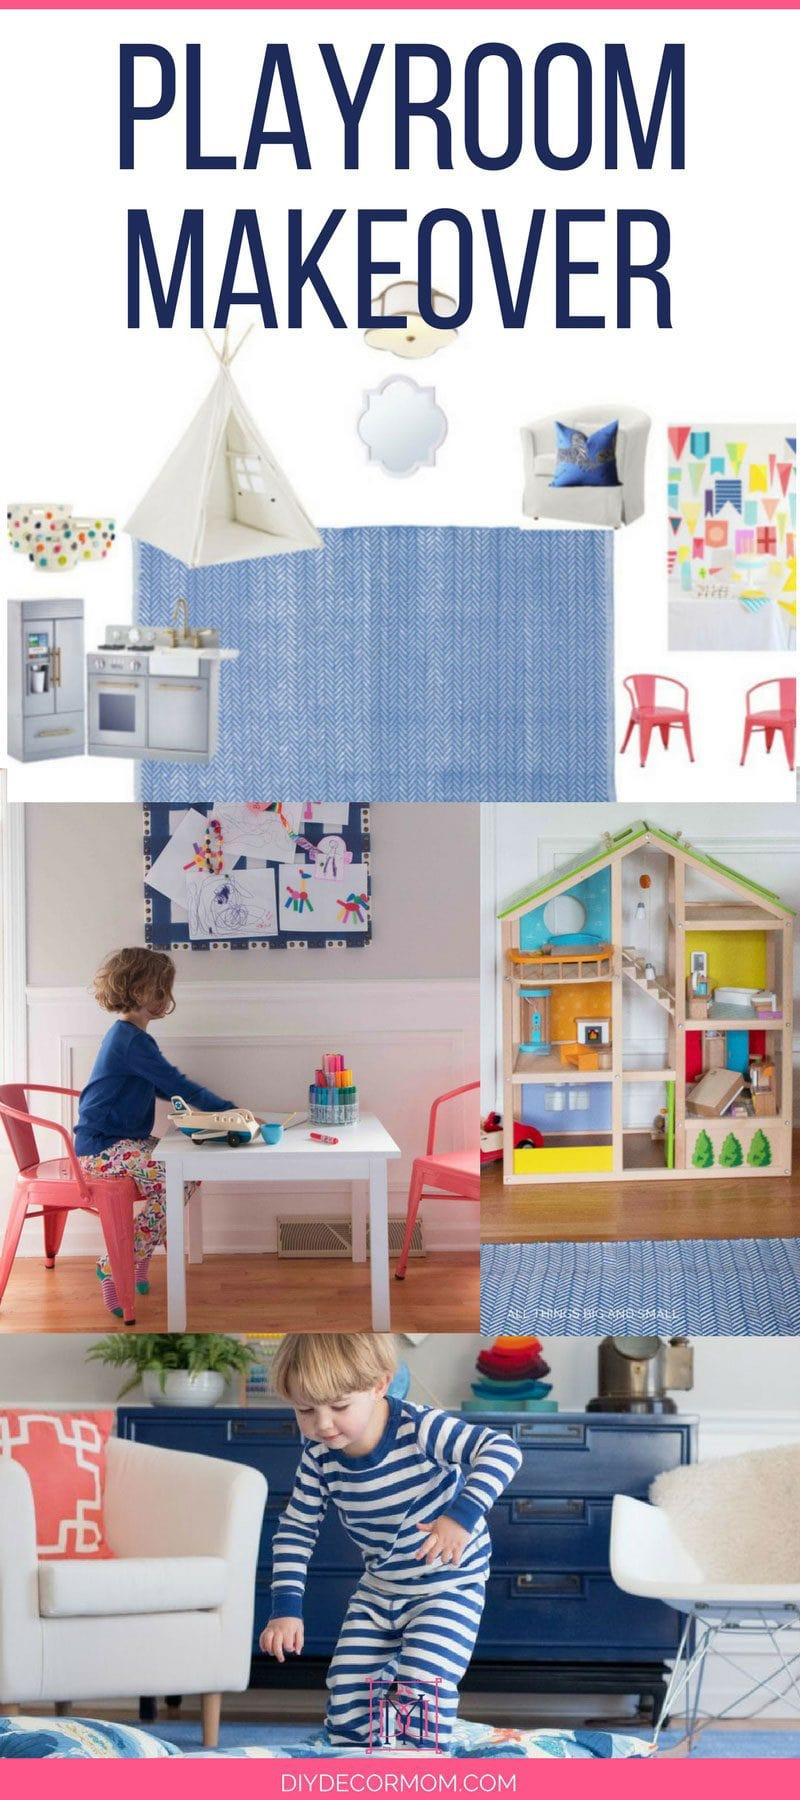 playroom decor and playroom makeover design for colorful playroom with kids